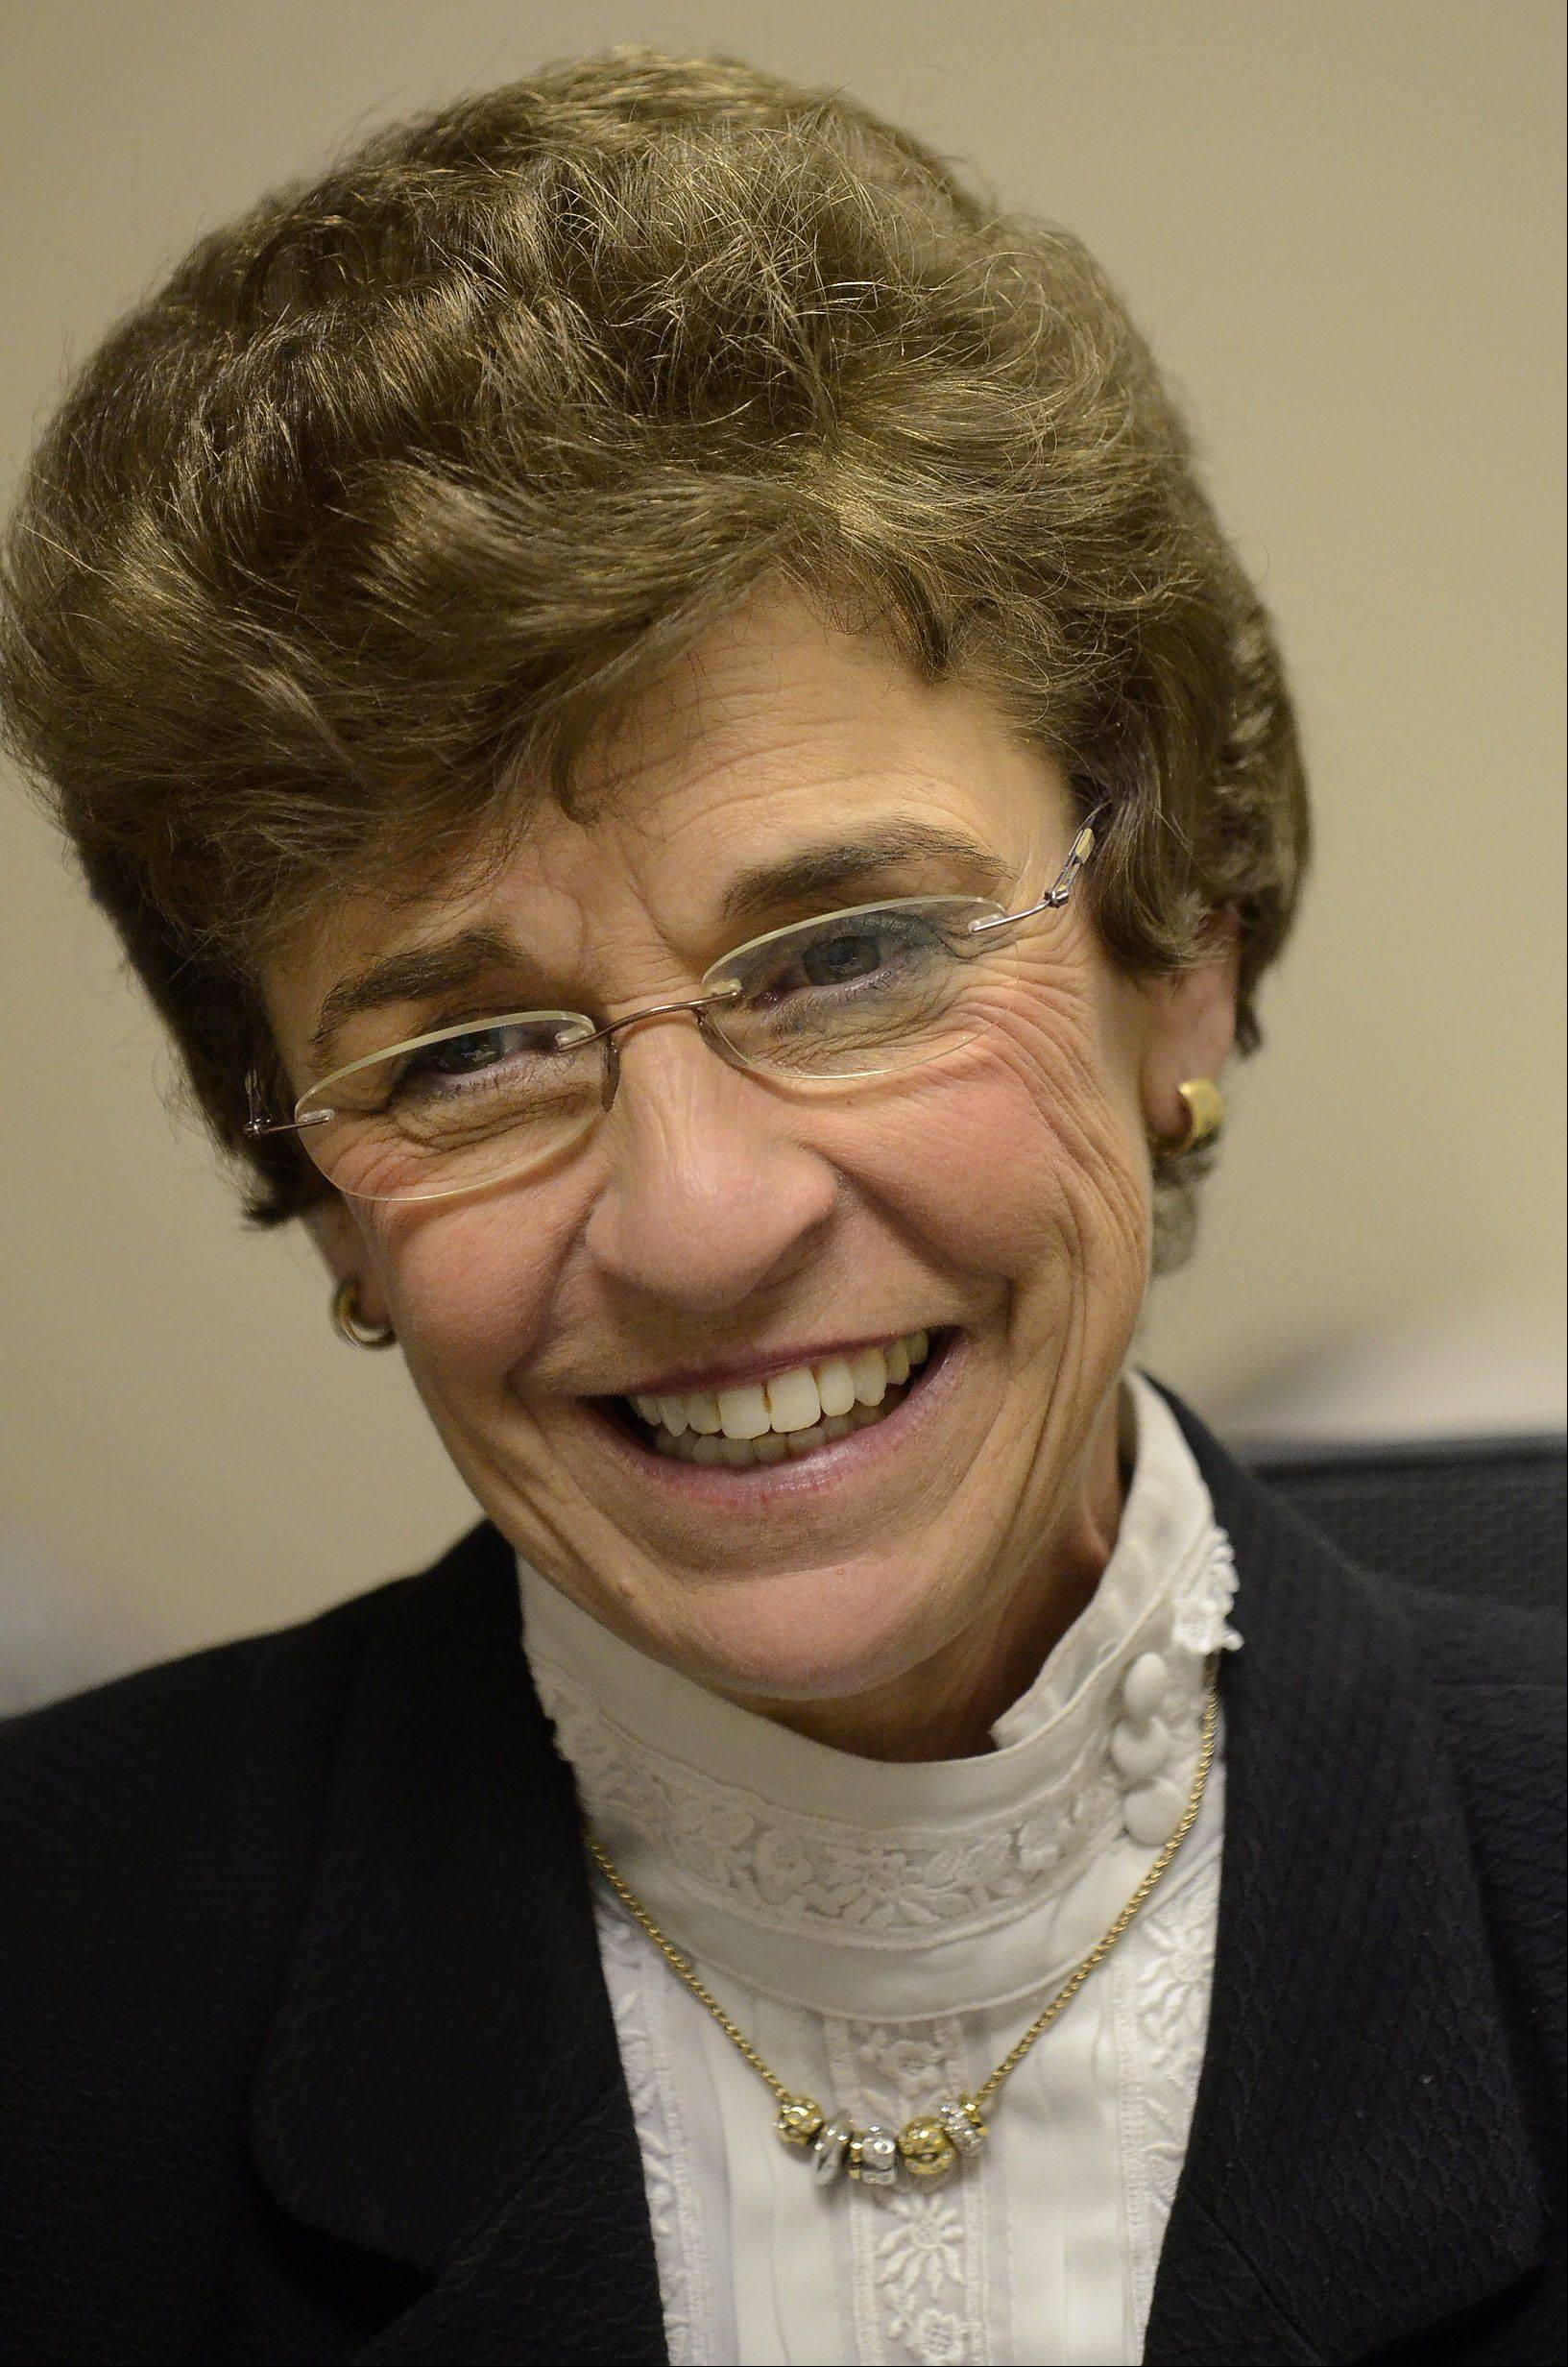 Bob Chwedyk/bchwedyk@dailyherald.comArlington Heights Village President Arlene Mulder, on the eve of her departure from office. She leaves a lasting legacy.